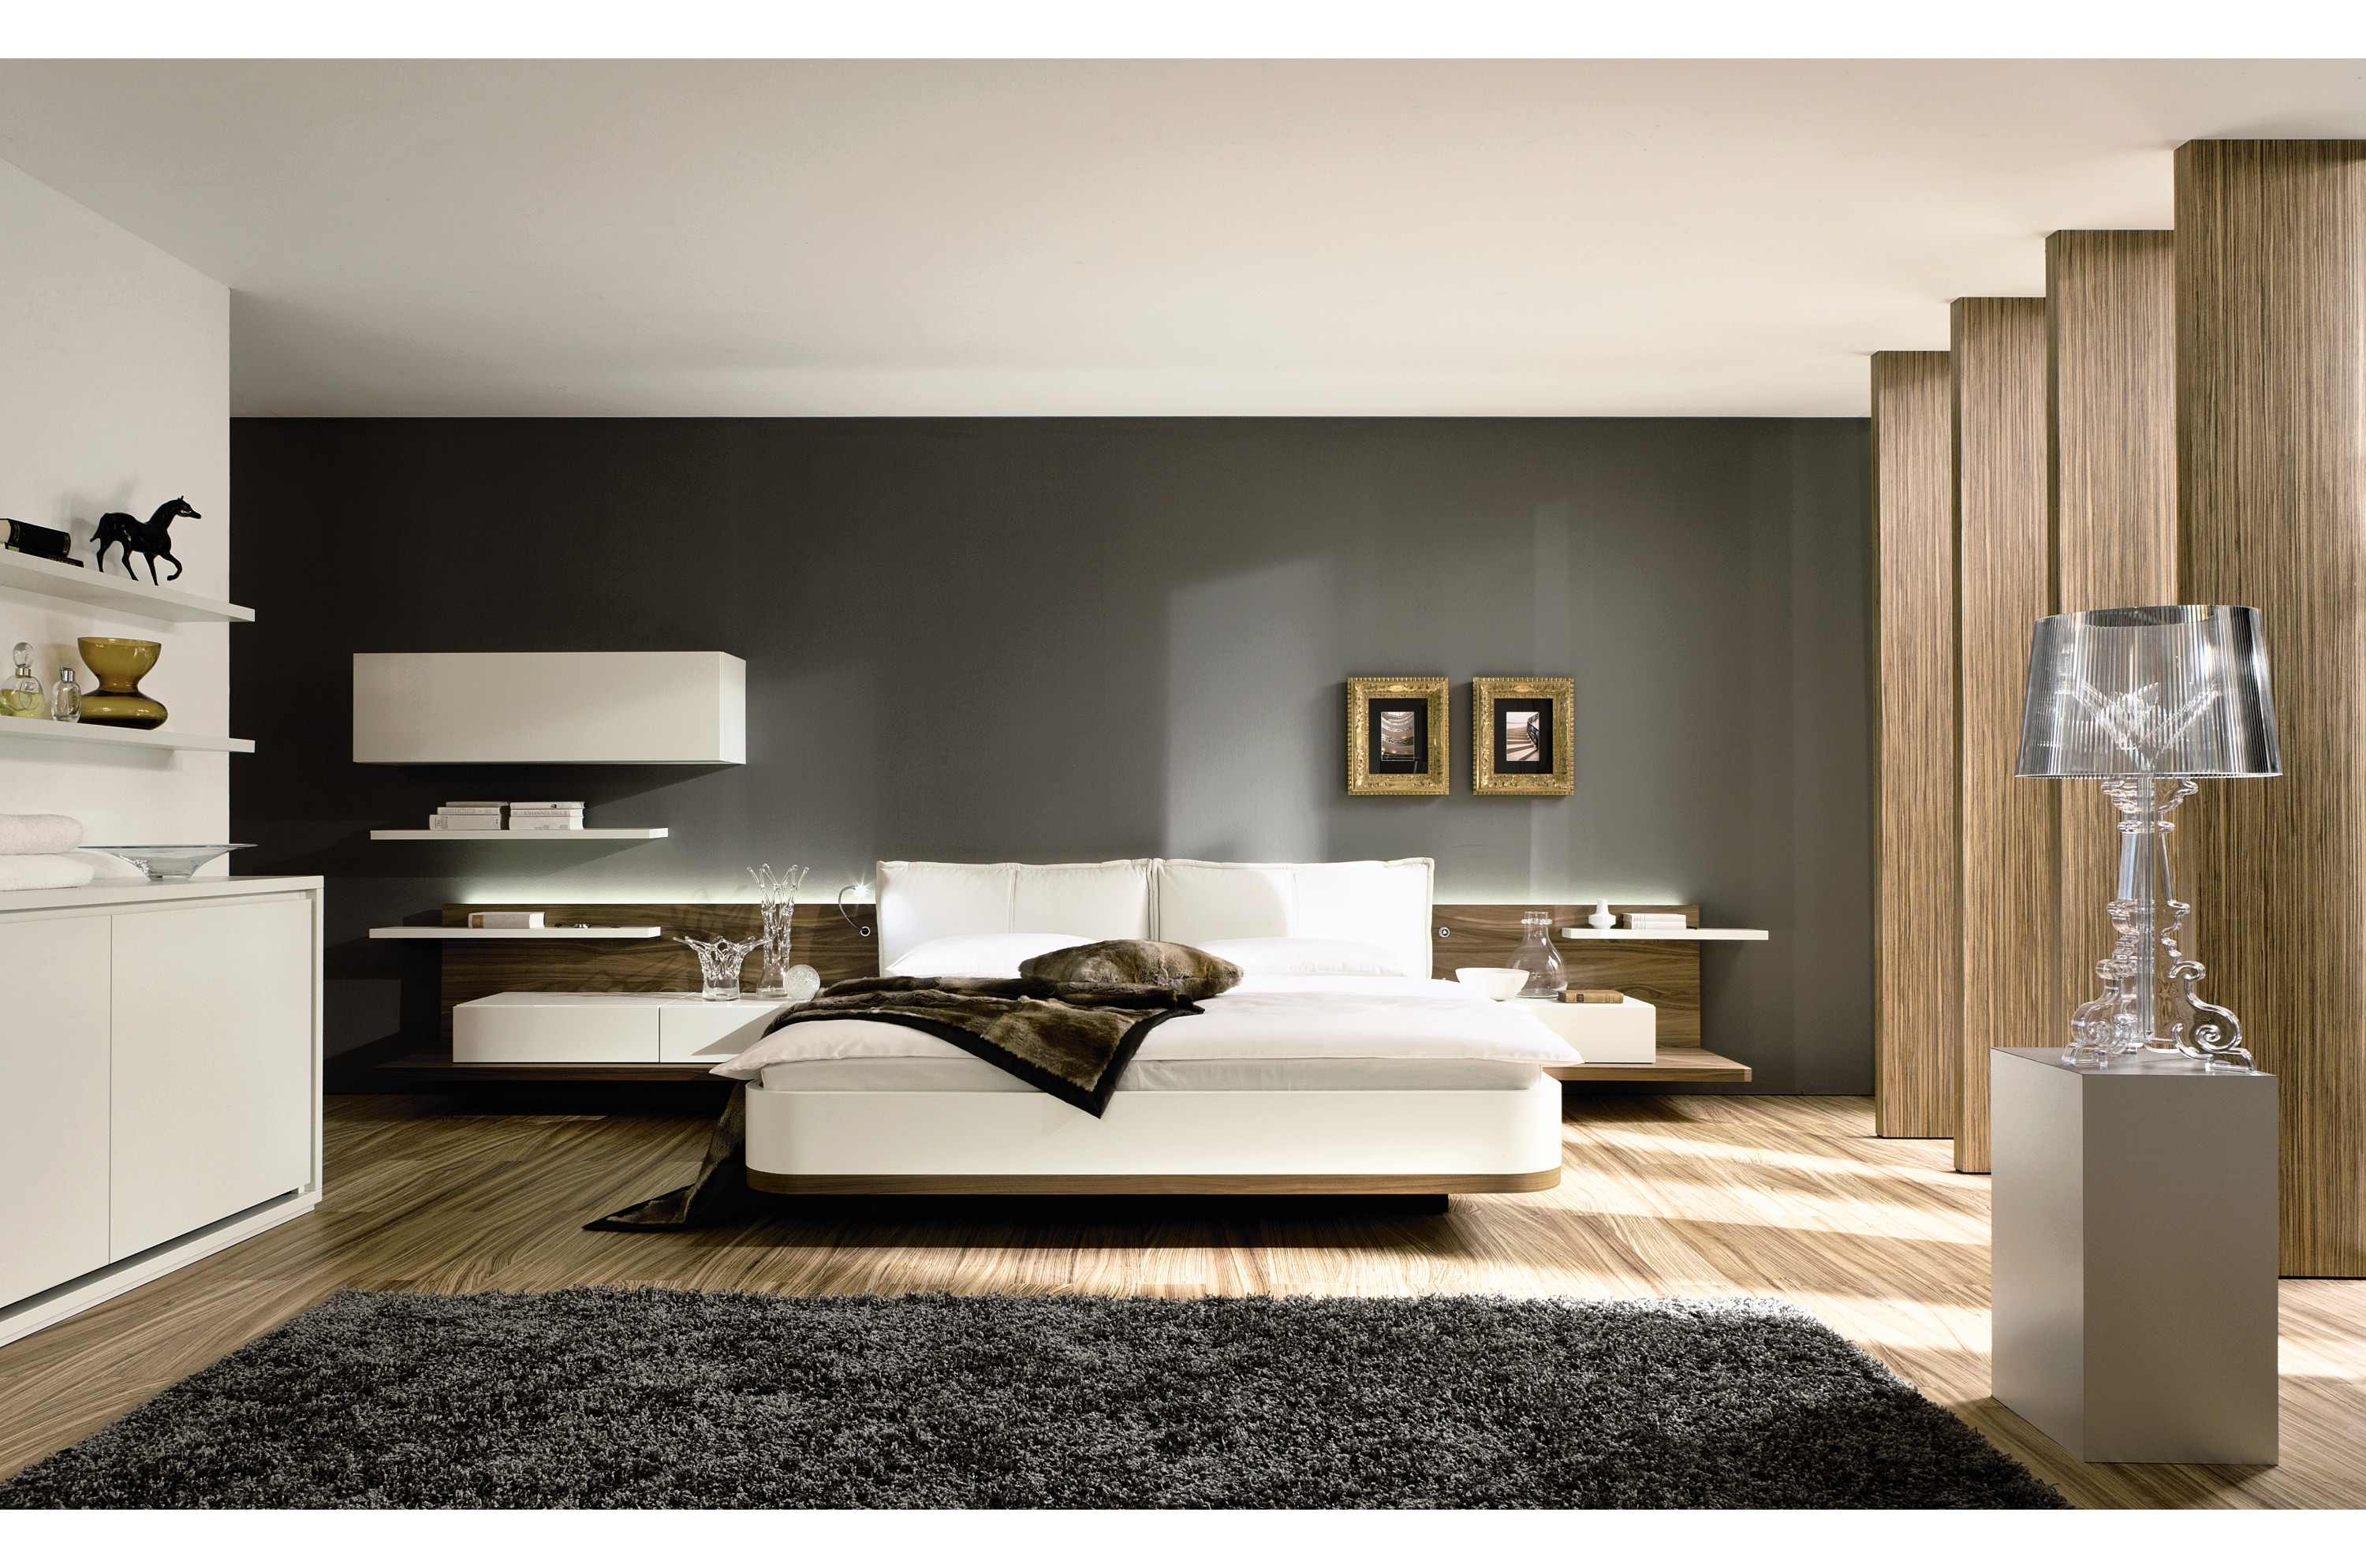 Top Modern Bedroom Design Ideas 3000 x 1988 · 1267 kB · jpeg